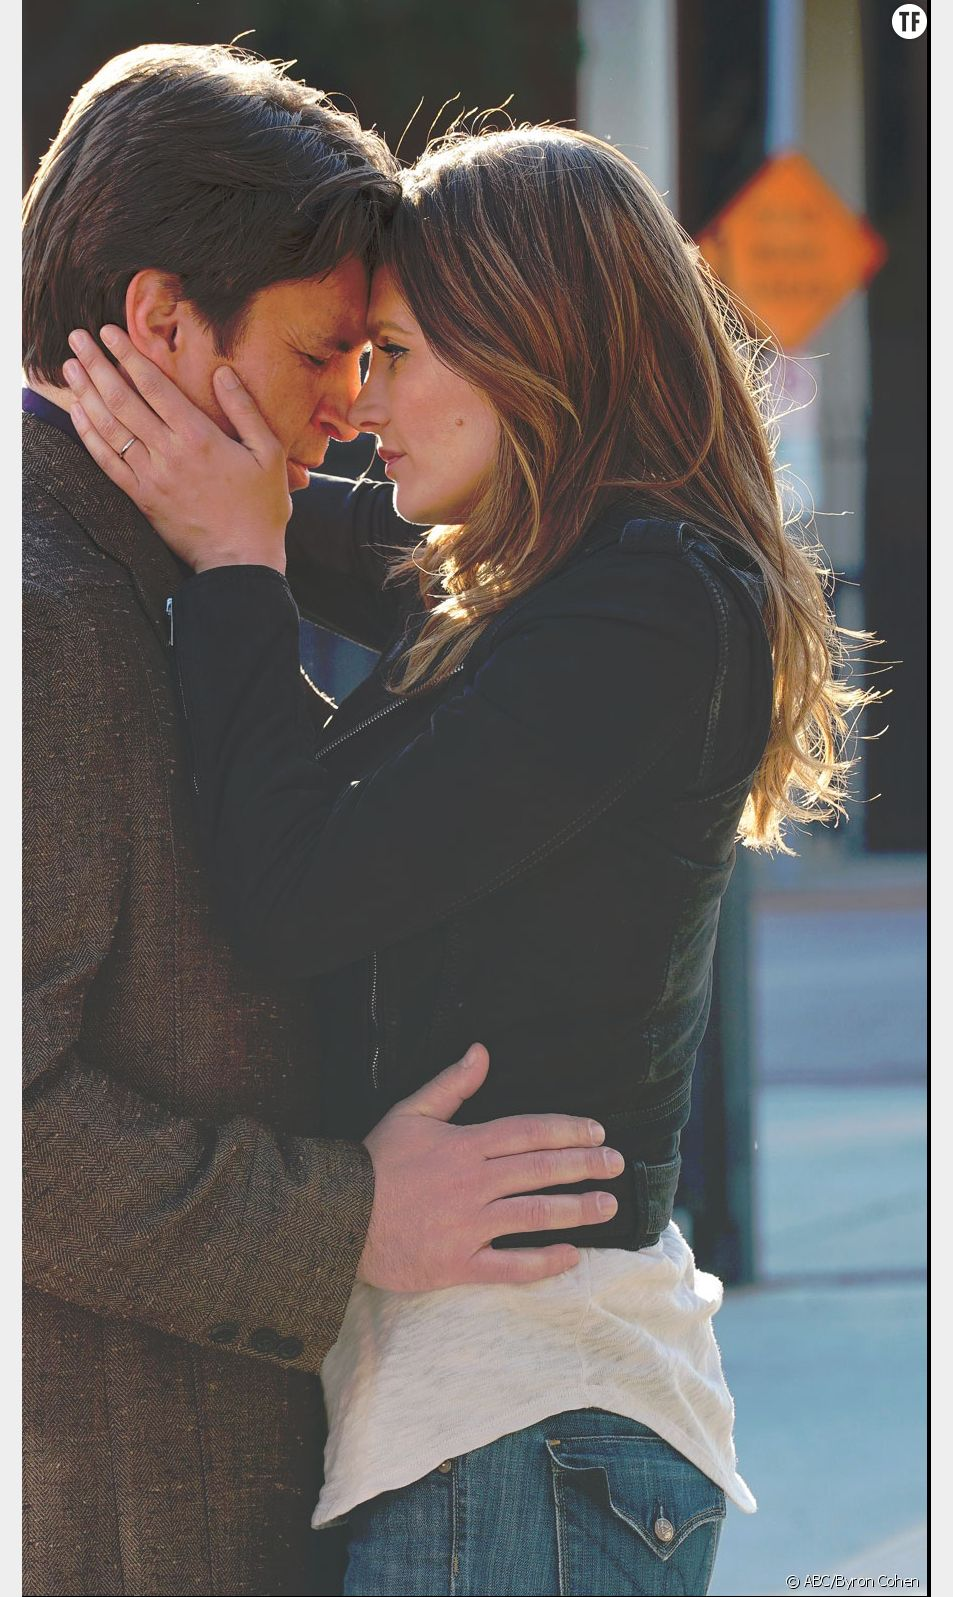 Castle saison 8 en replay sur France TV Pluzz